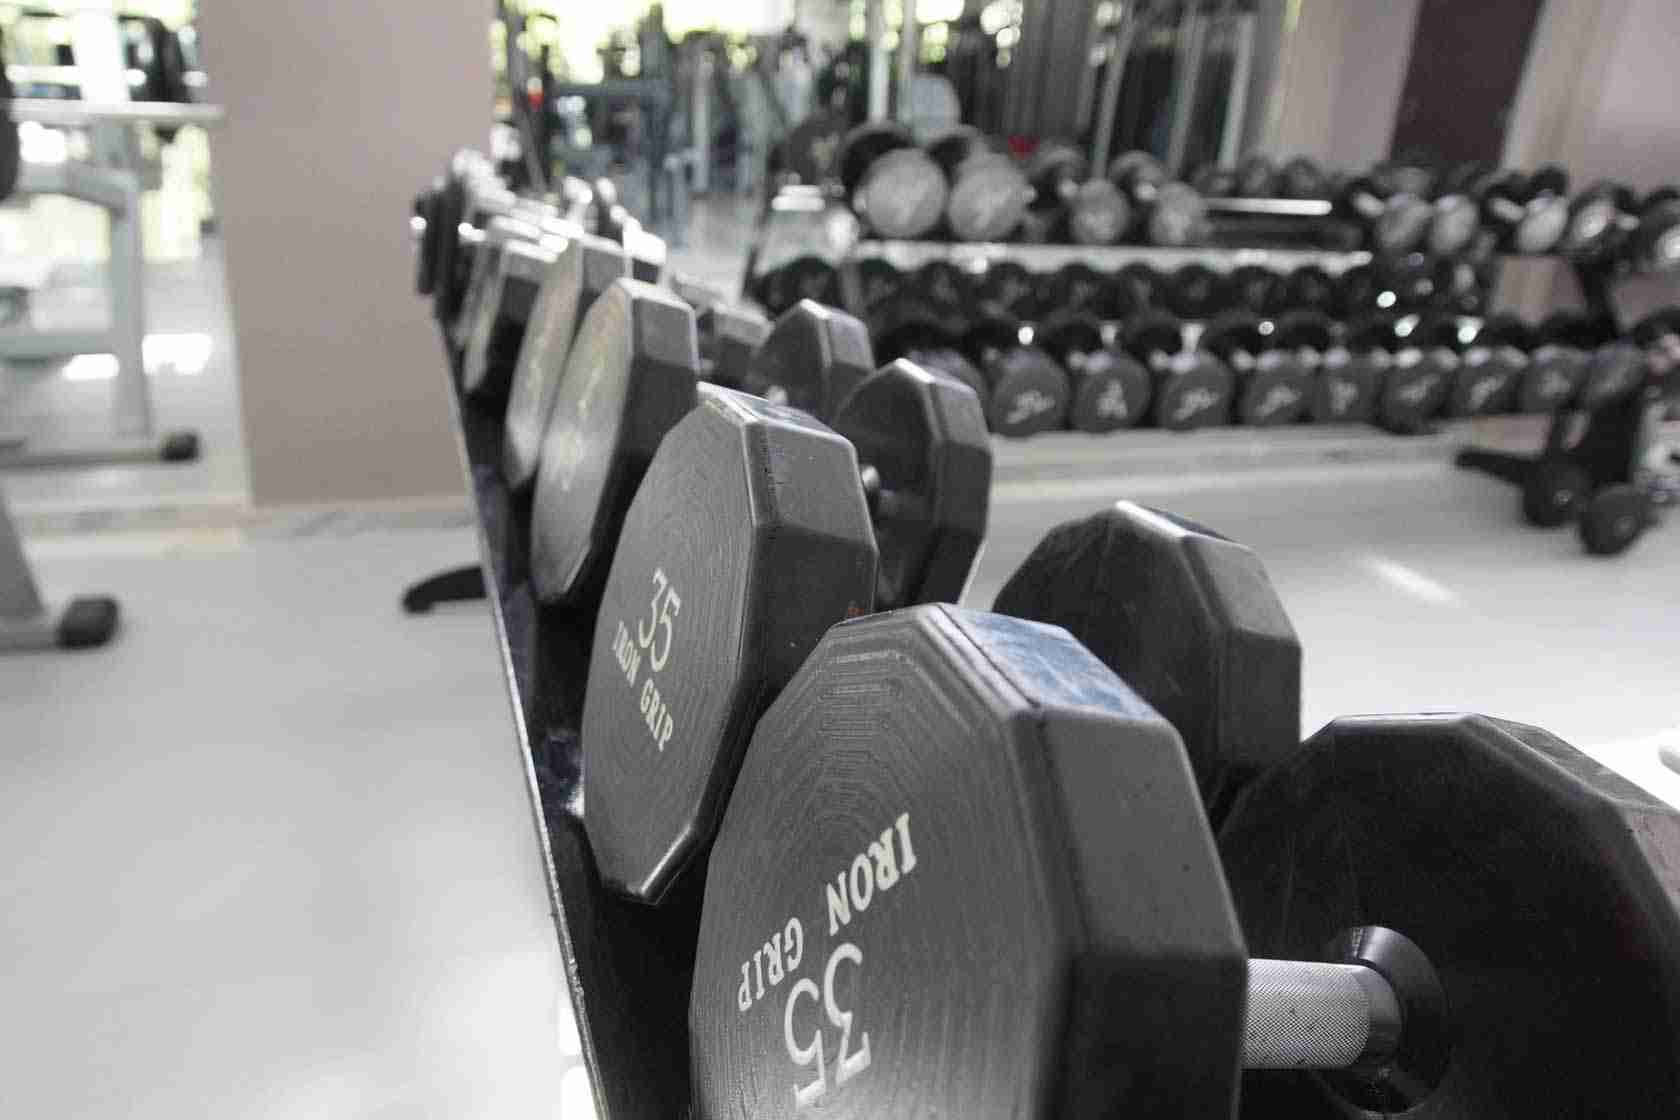 Dumbbells in #AxionFitnessClub